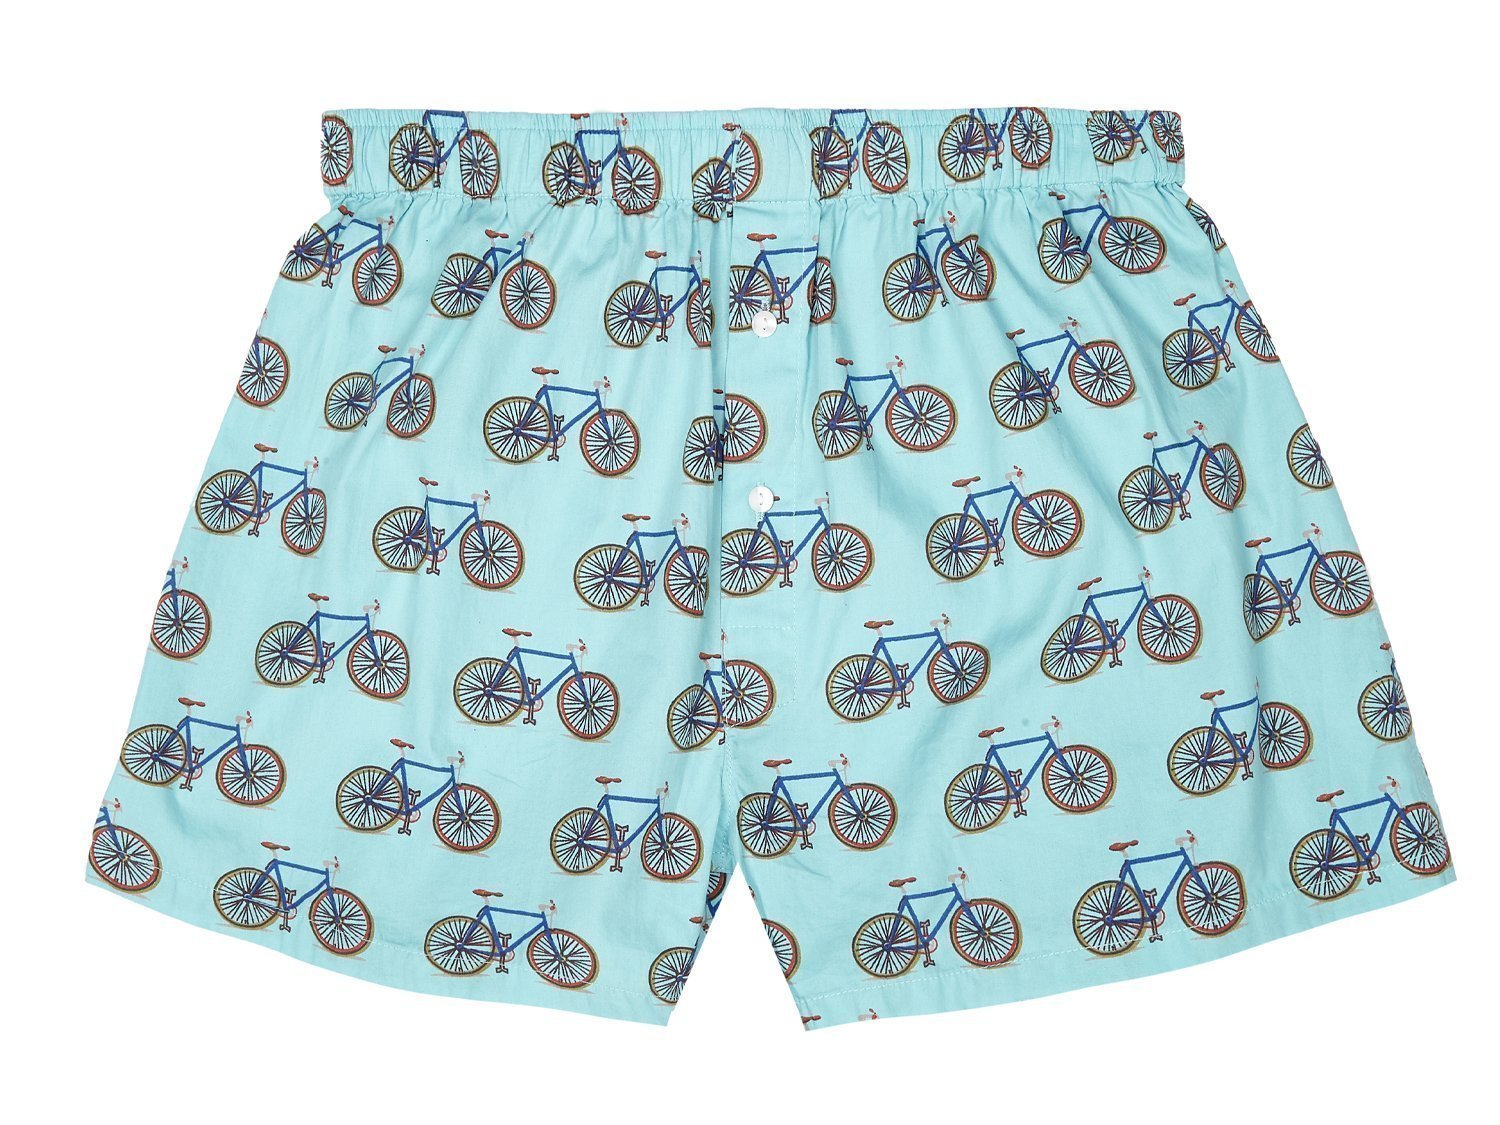 Boris's Bike Boxers Shorts